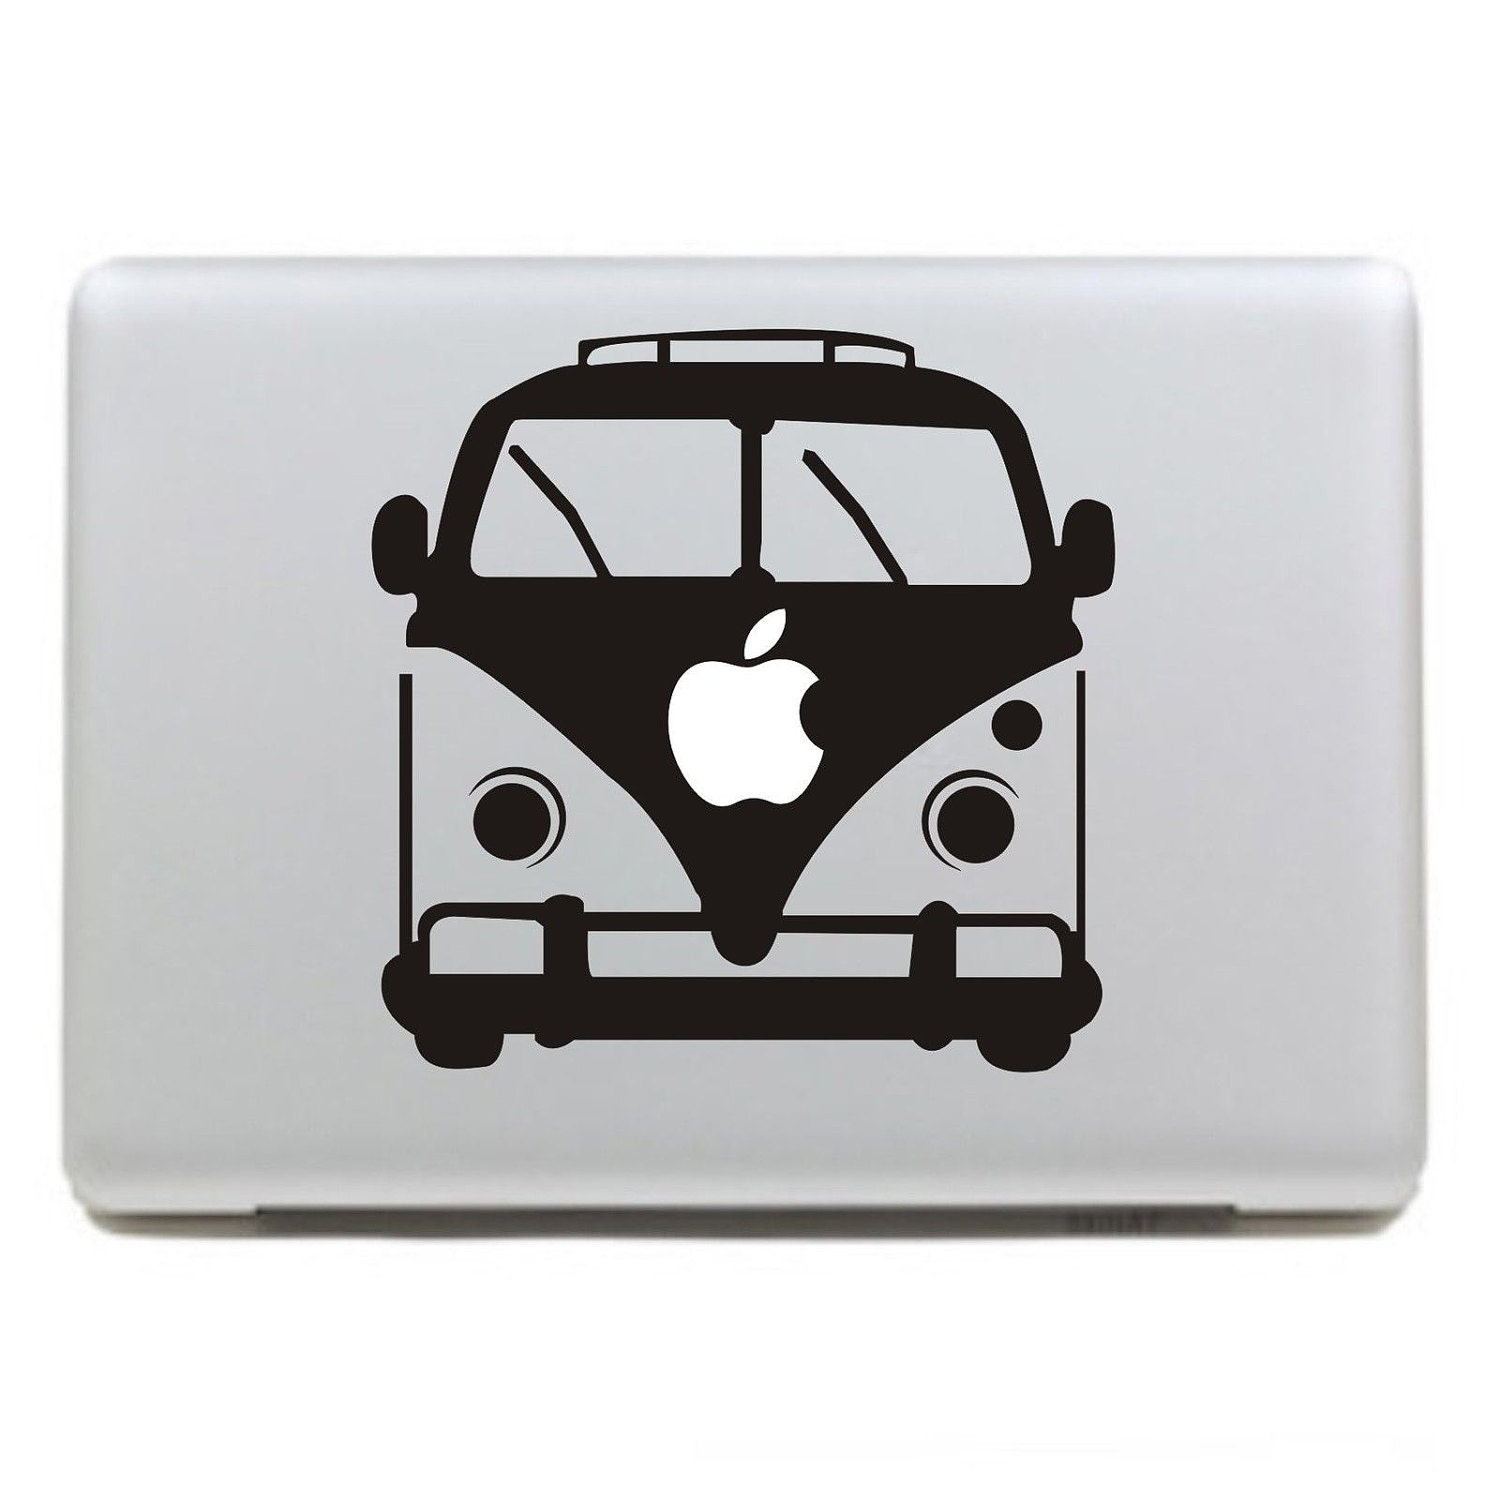 MacBook 11 inch decal sticker VW Van art cover for Apple Laptop